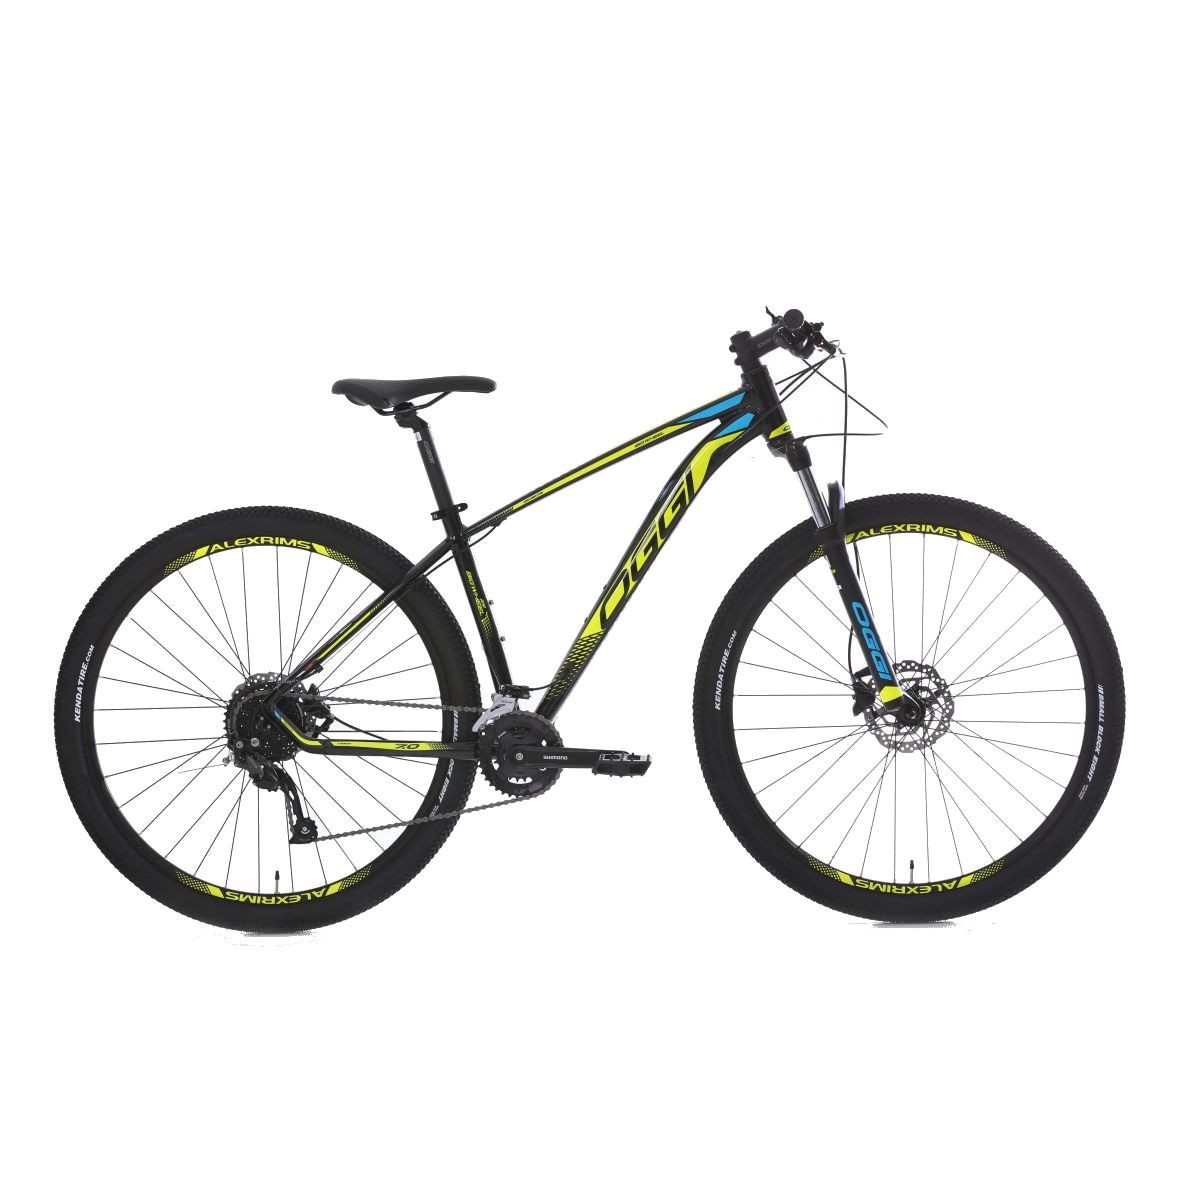 Bicicleta MTB Oggi Big Wheel 7.0 18v 2020